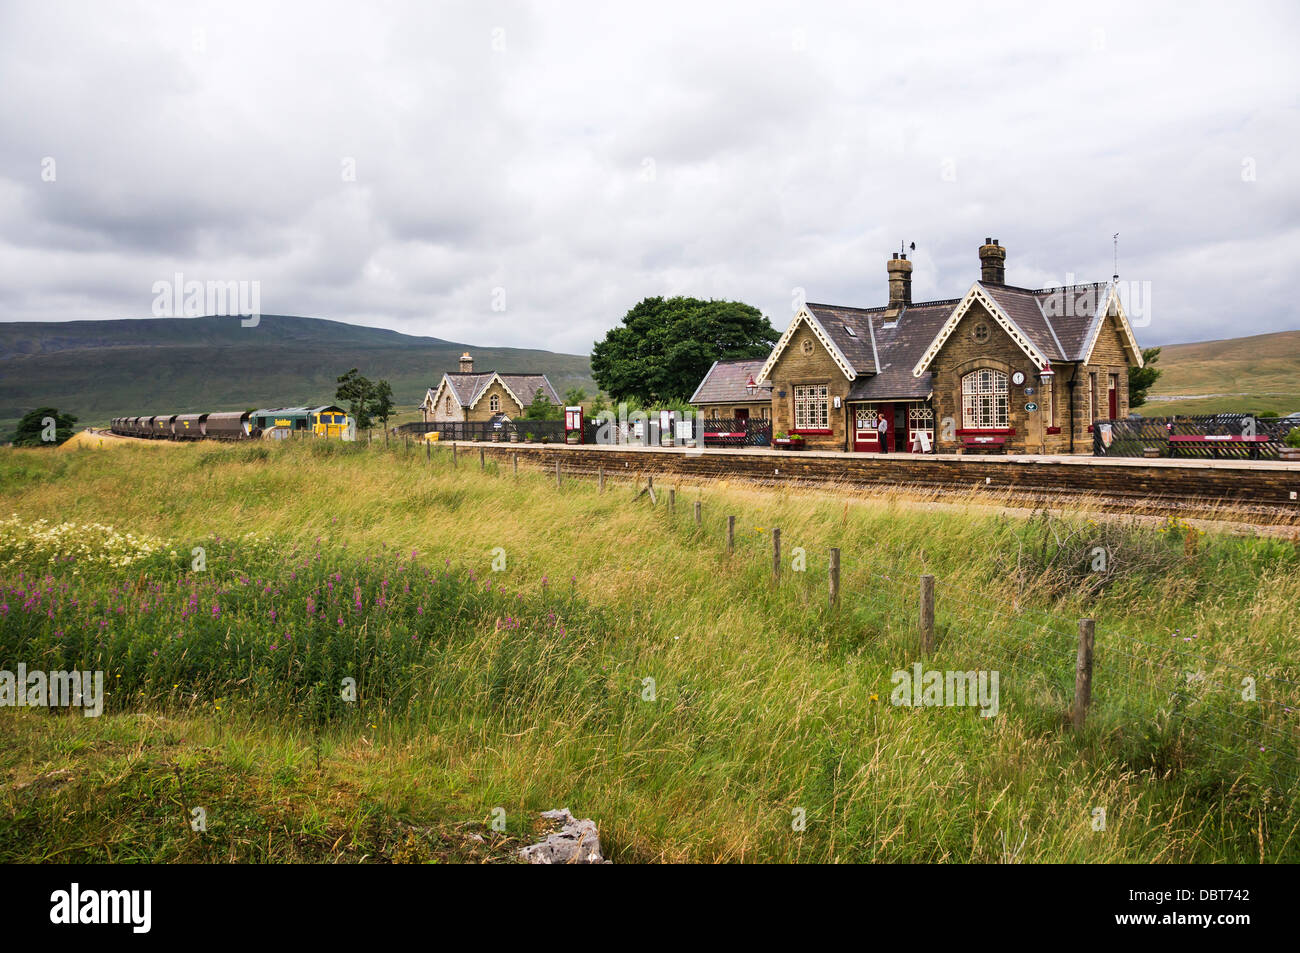 Freight train approaching Ribblehead Station on the Settle - Carlisle line. - Stock Image